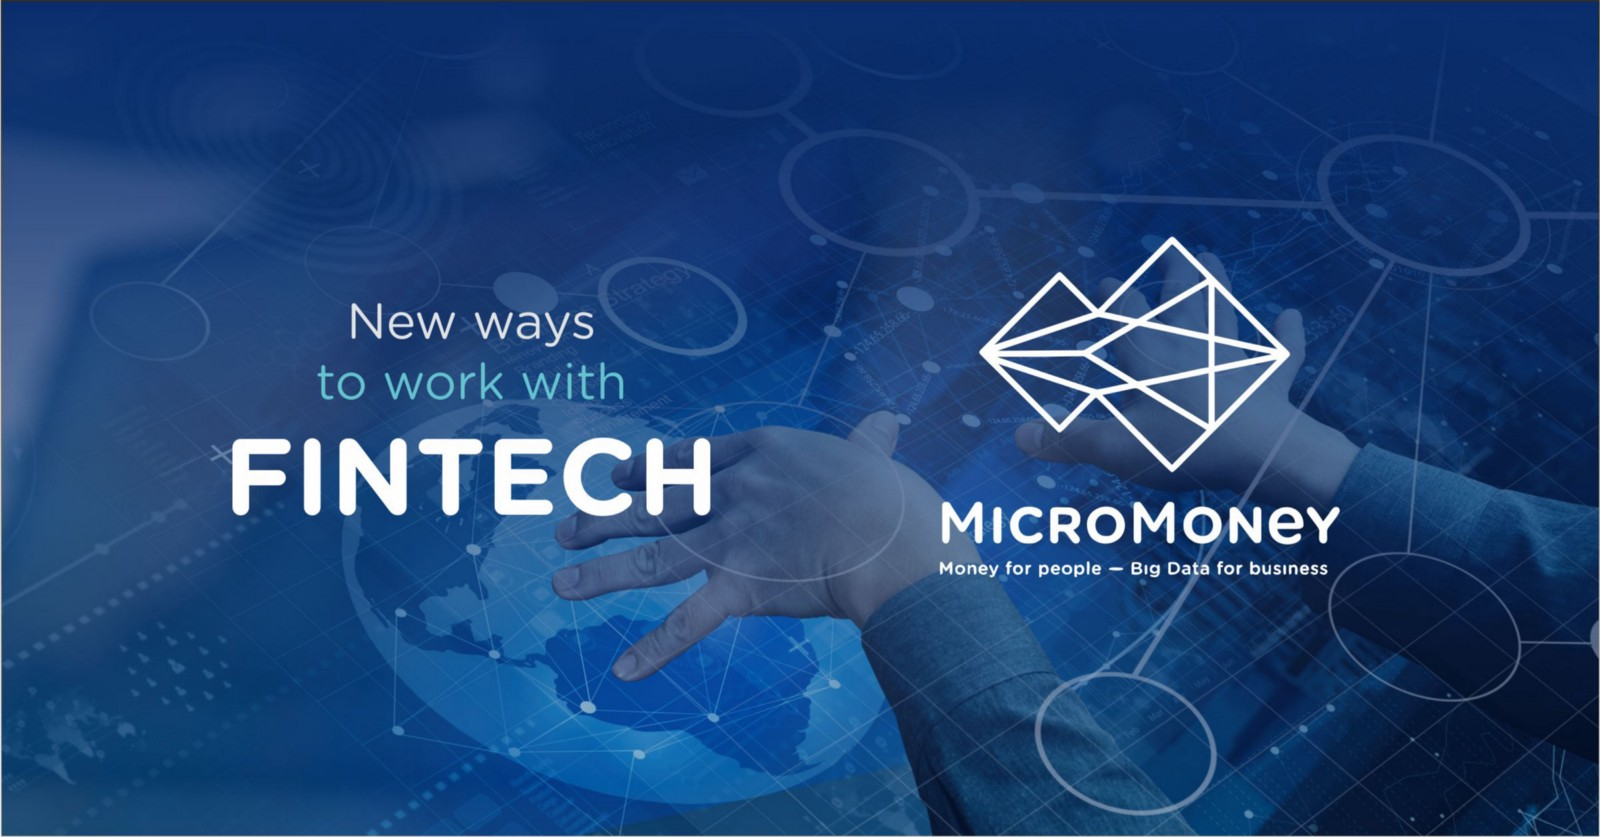 banks are open to open banking new ways to work with fintech